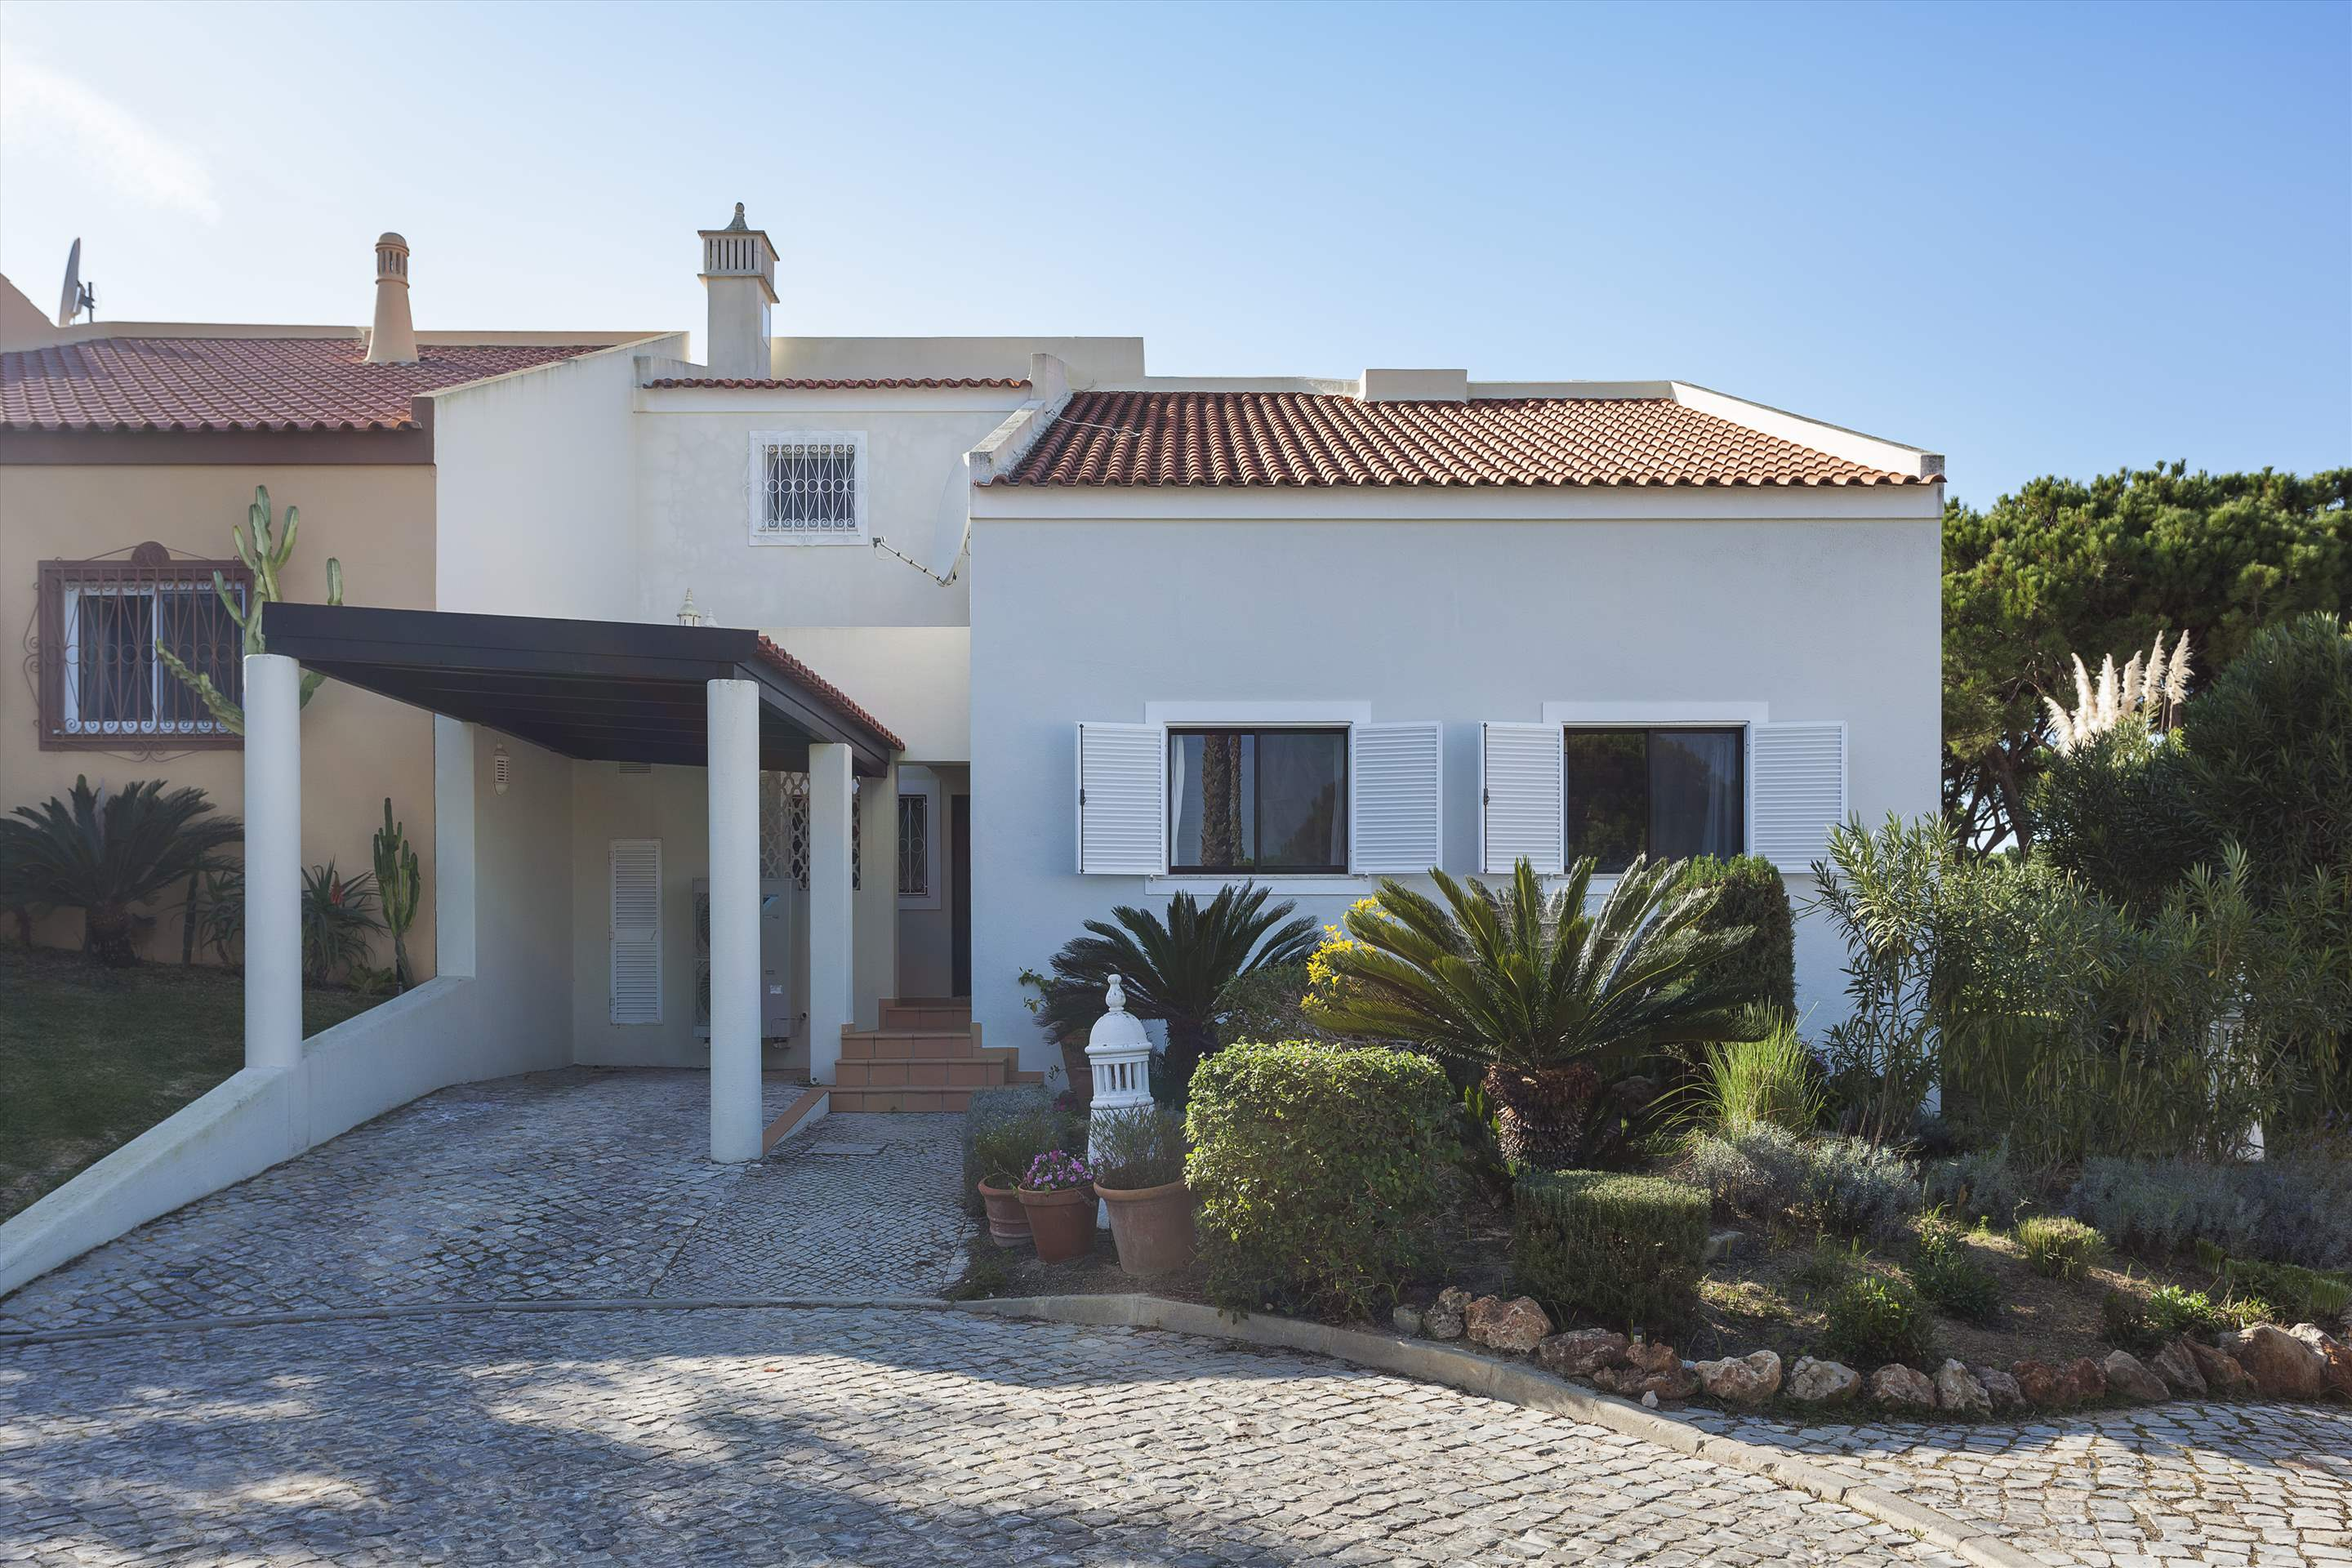 Villa Cascata, 4 Bedroom, 4 bedroom villa in Vale do Lobo, Algarve Photo #15